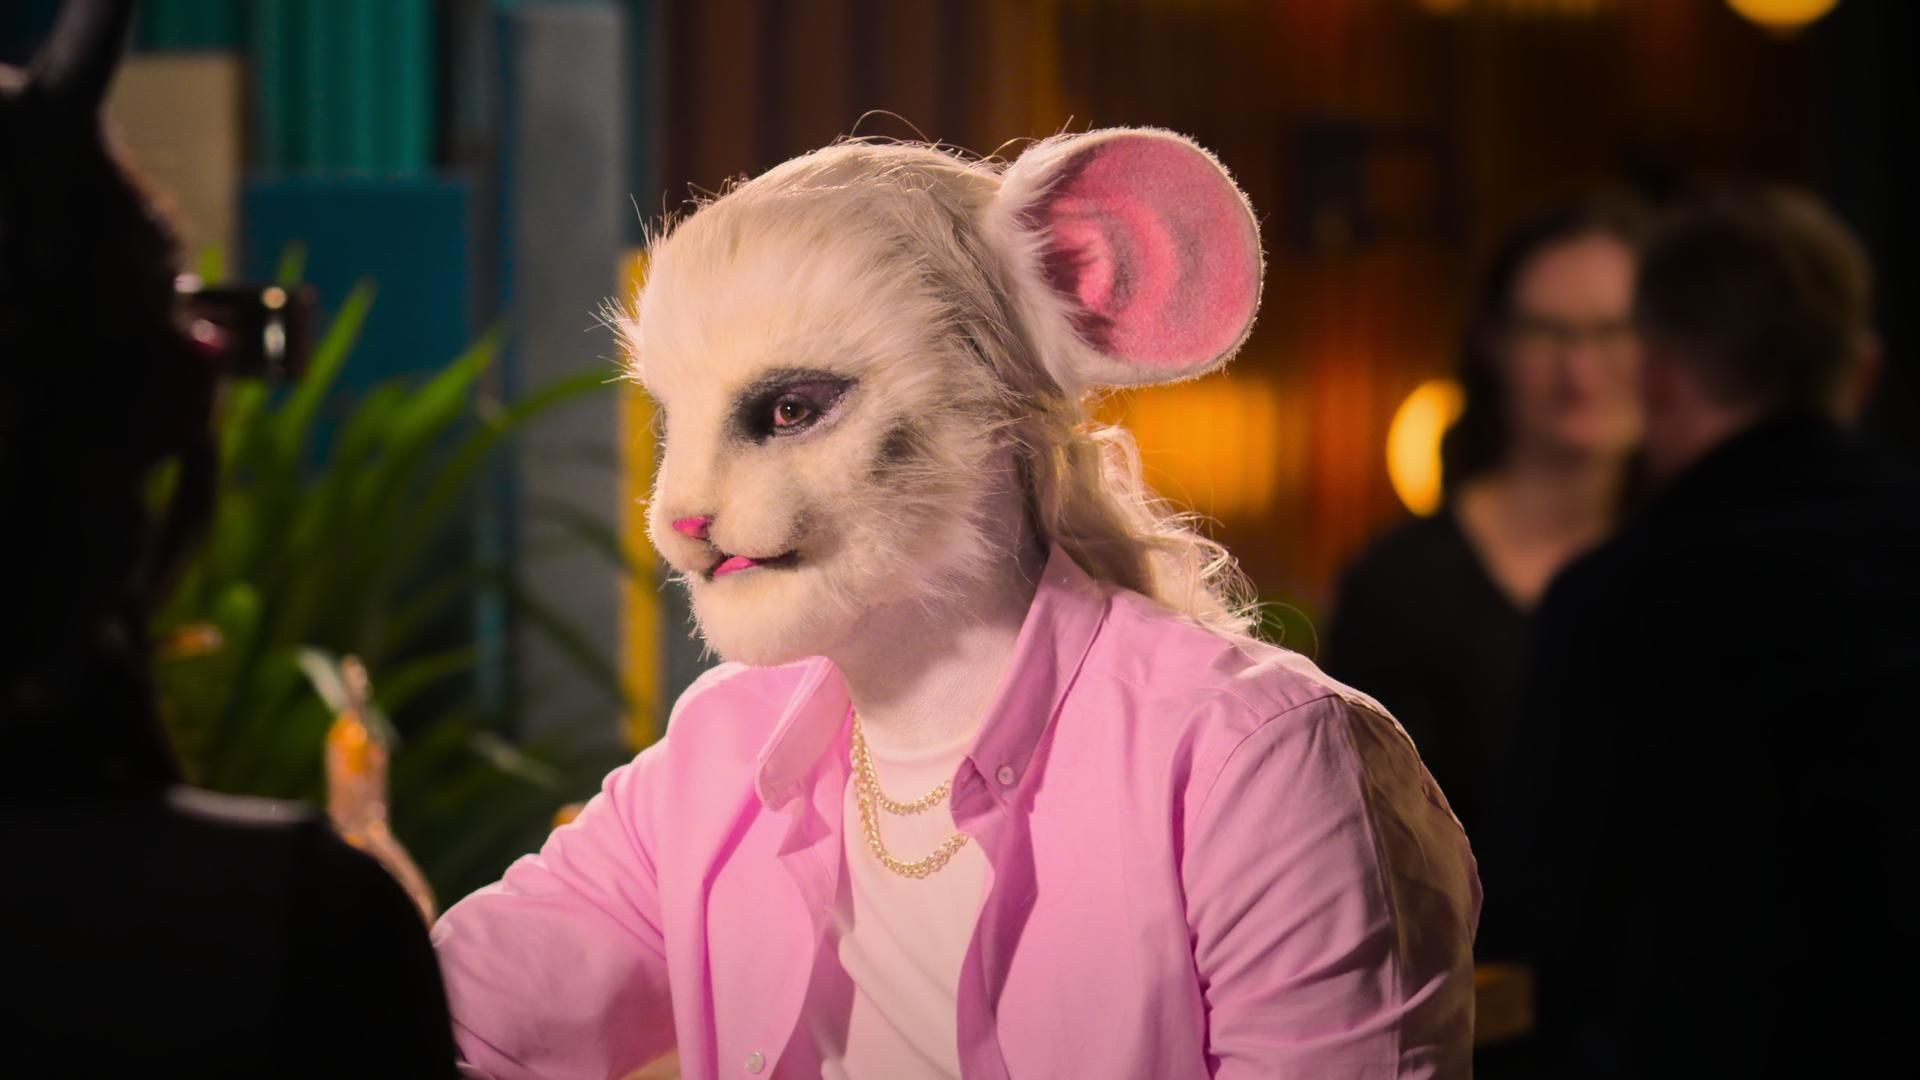 Sexy Beasts: The best reactions to Netflix's new mask-wearing dating show